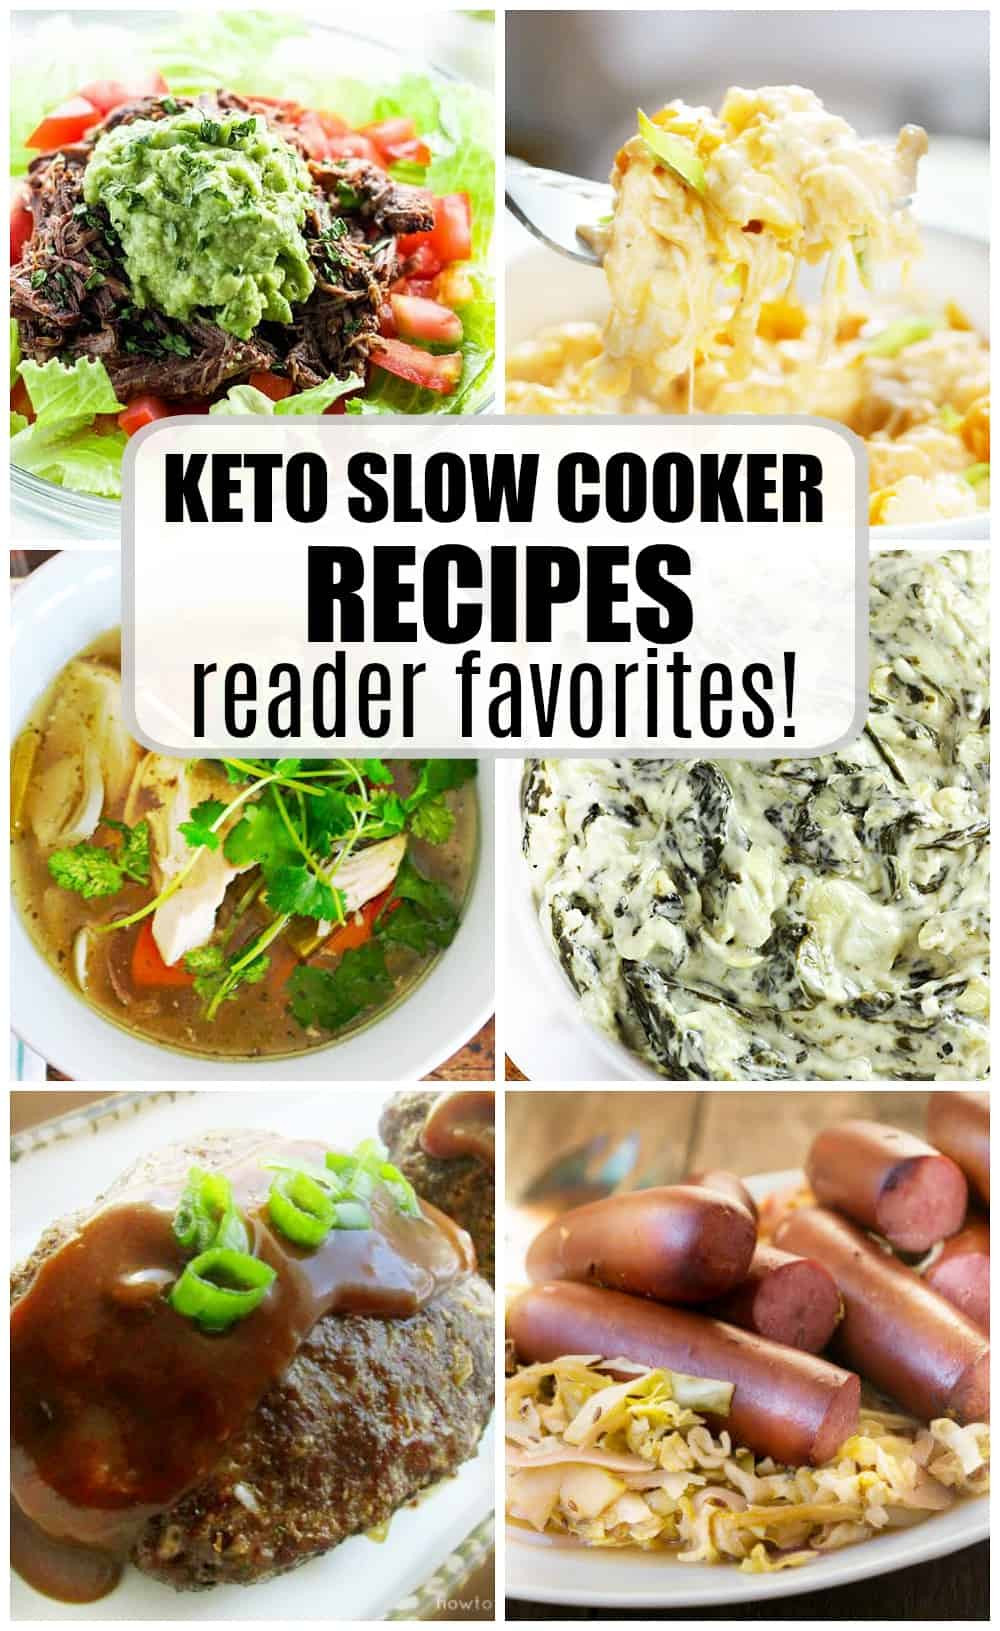 Slow Cooker Keto Recipes Low Carb  KETO Slow Cooker Recipes Low Carb High Fat Some of the Best